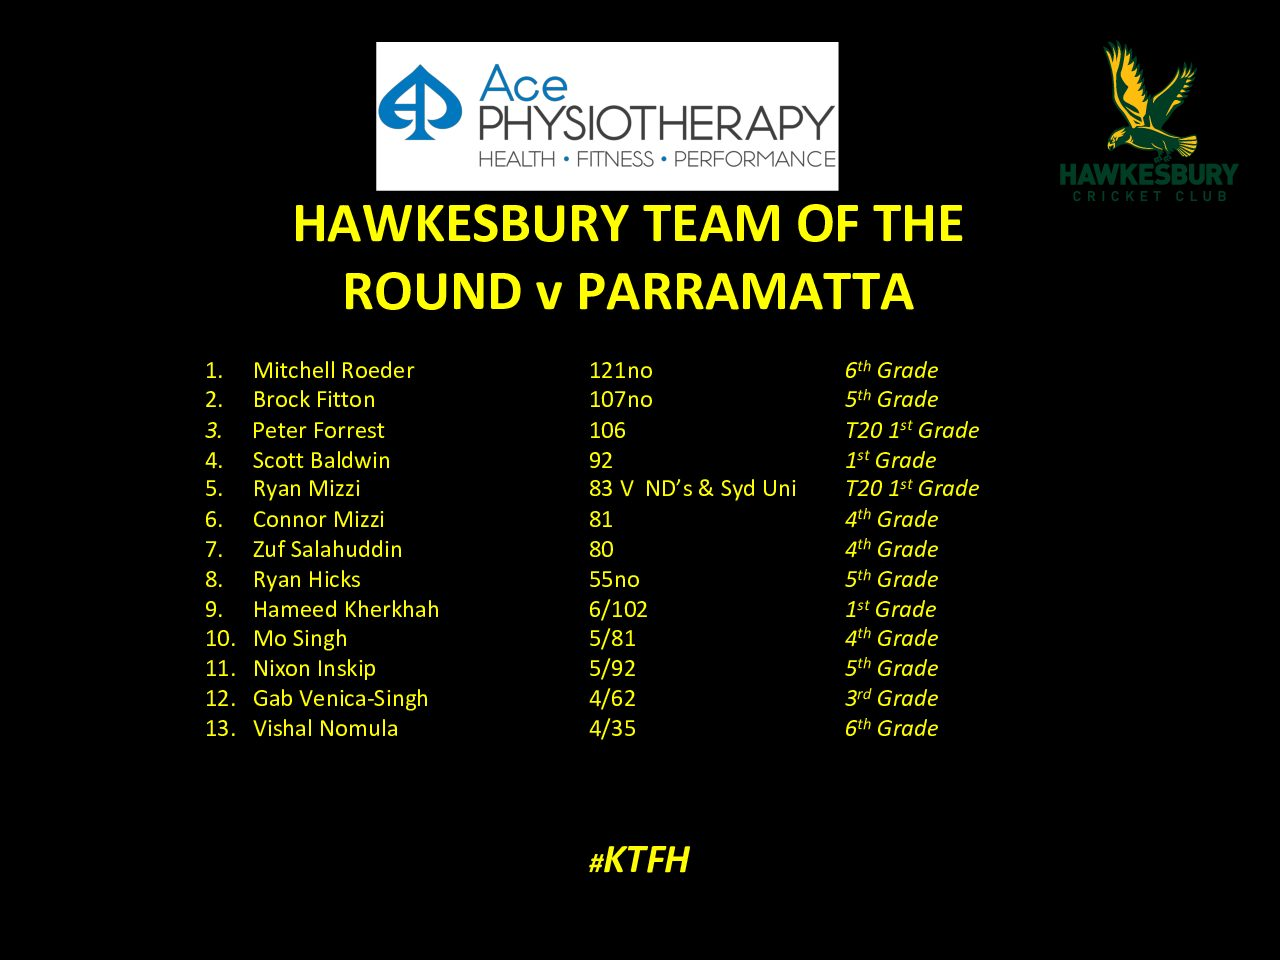 ACE PHYSIOTHERAPY – HAWKS TEAM OF THE ROUND – PARRAMATTA